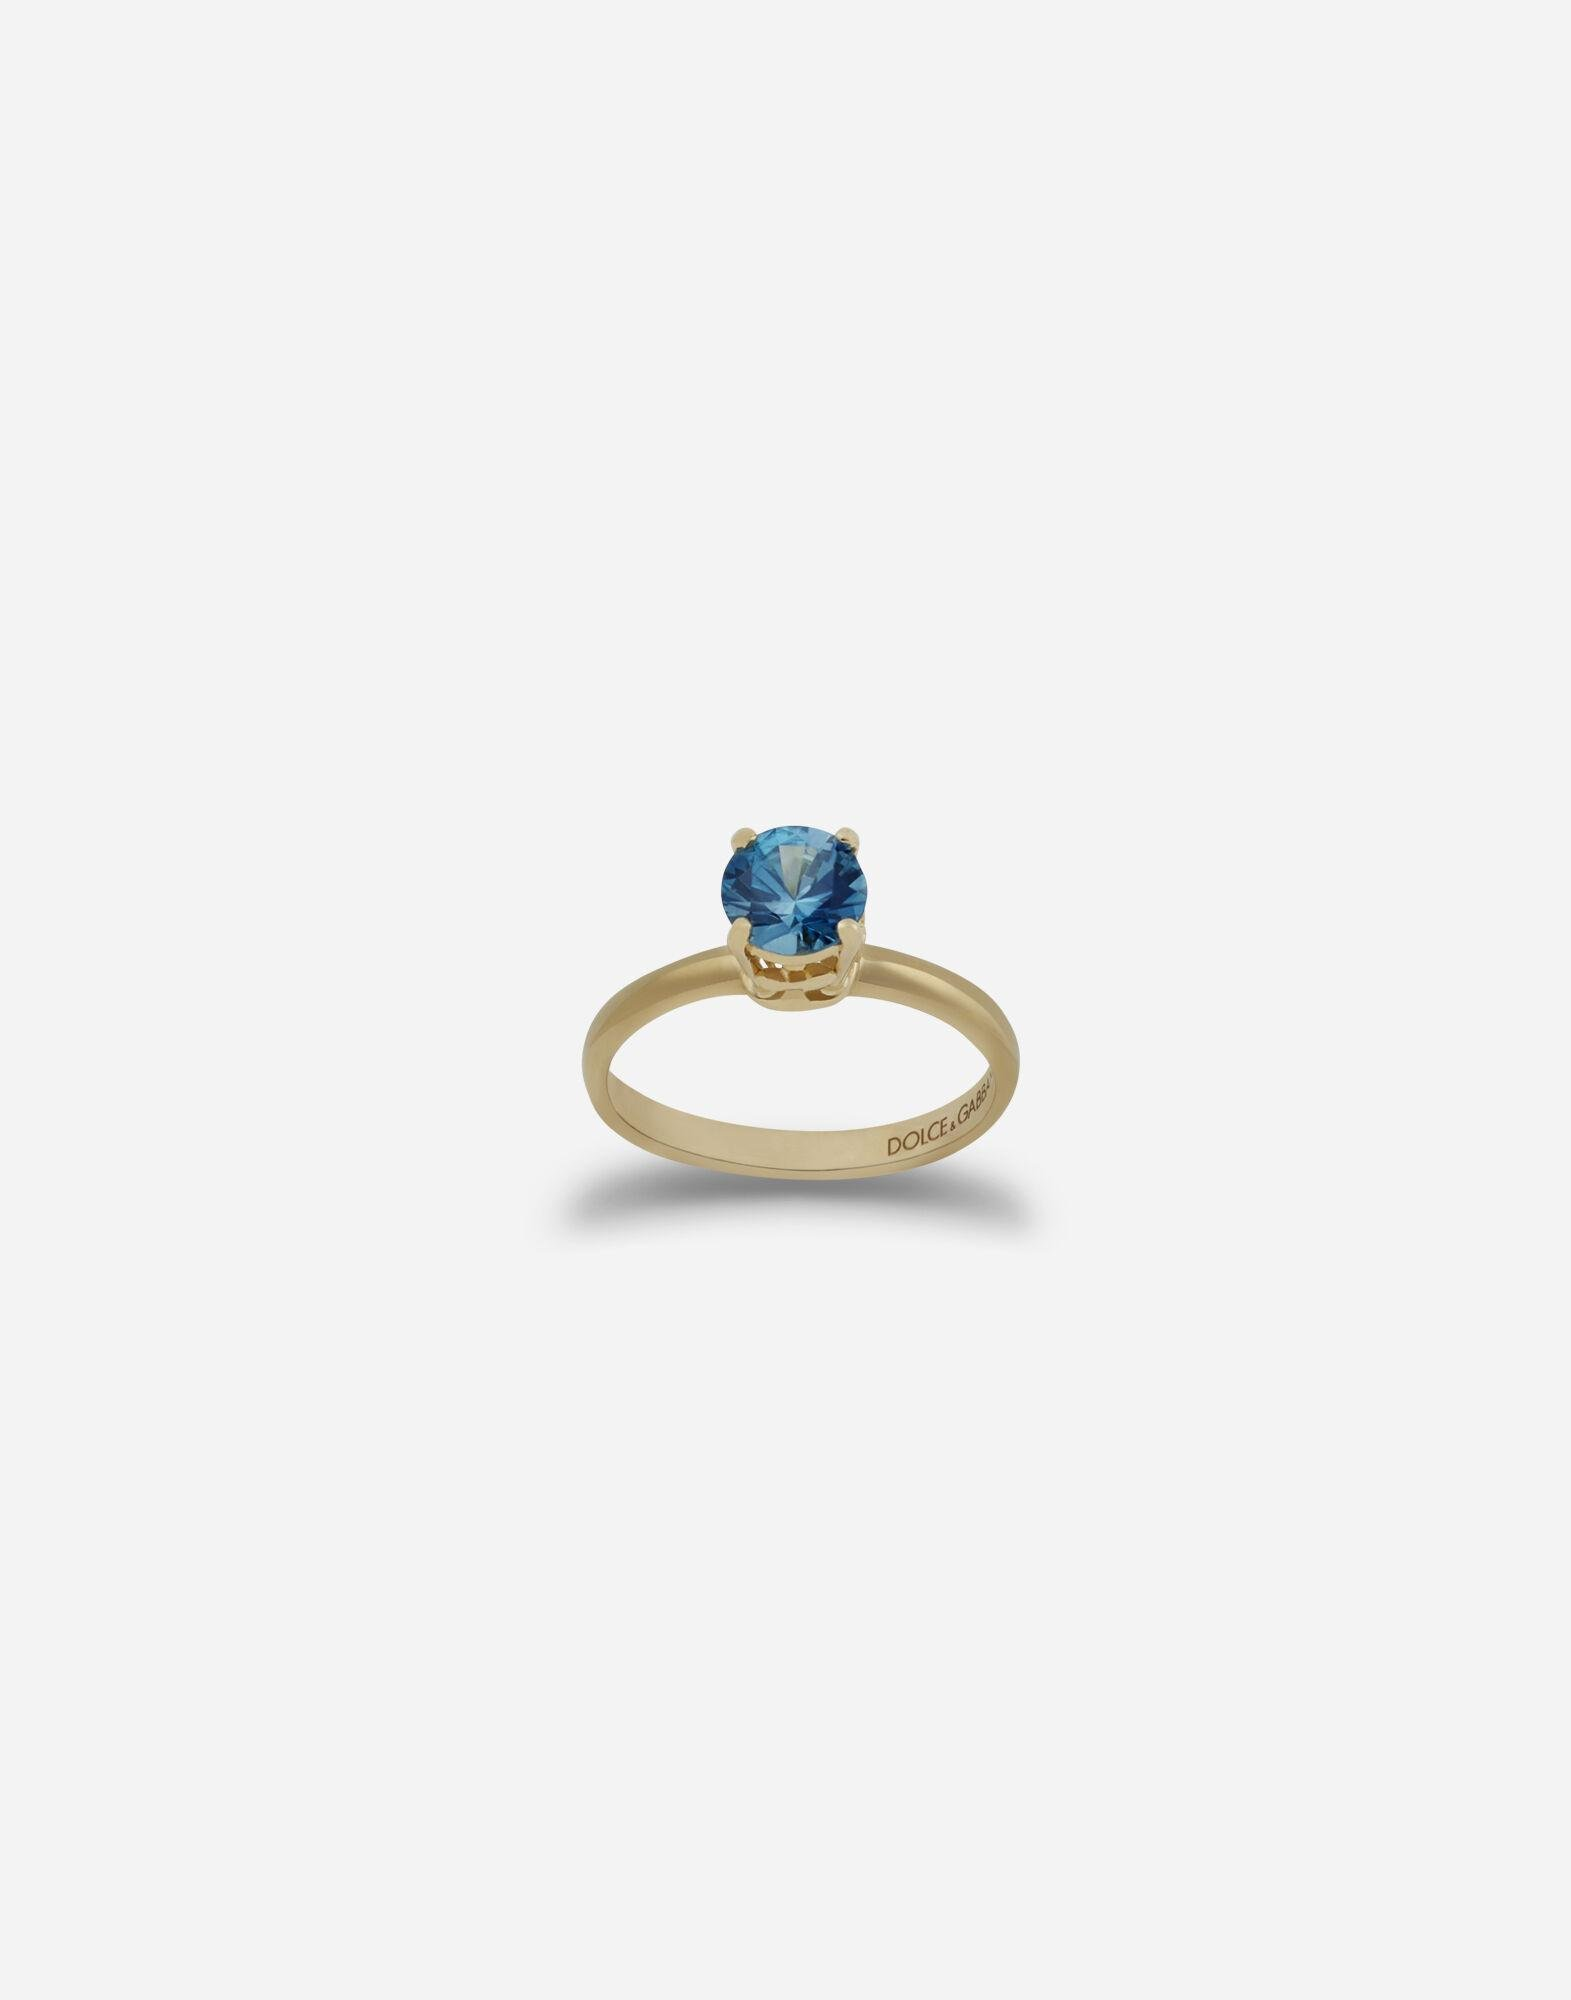 Heritage ring in yellow gold with zircon